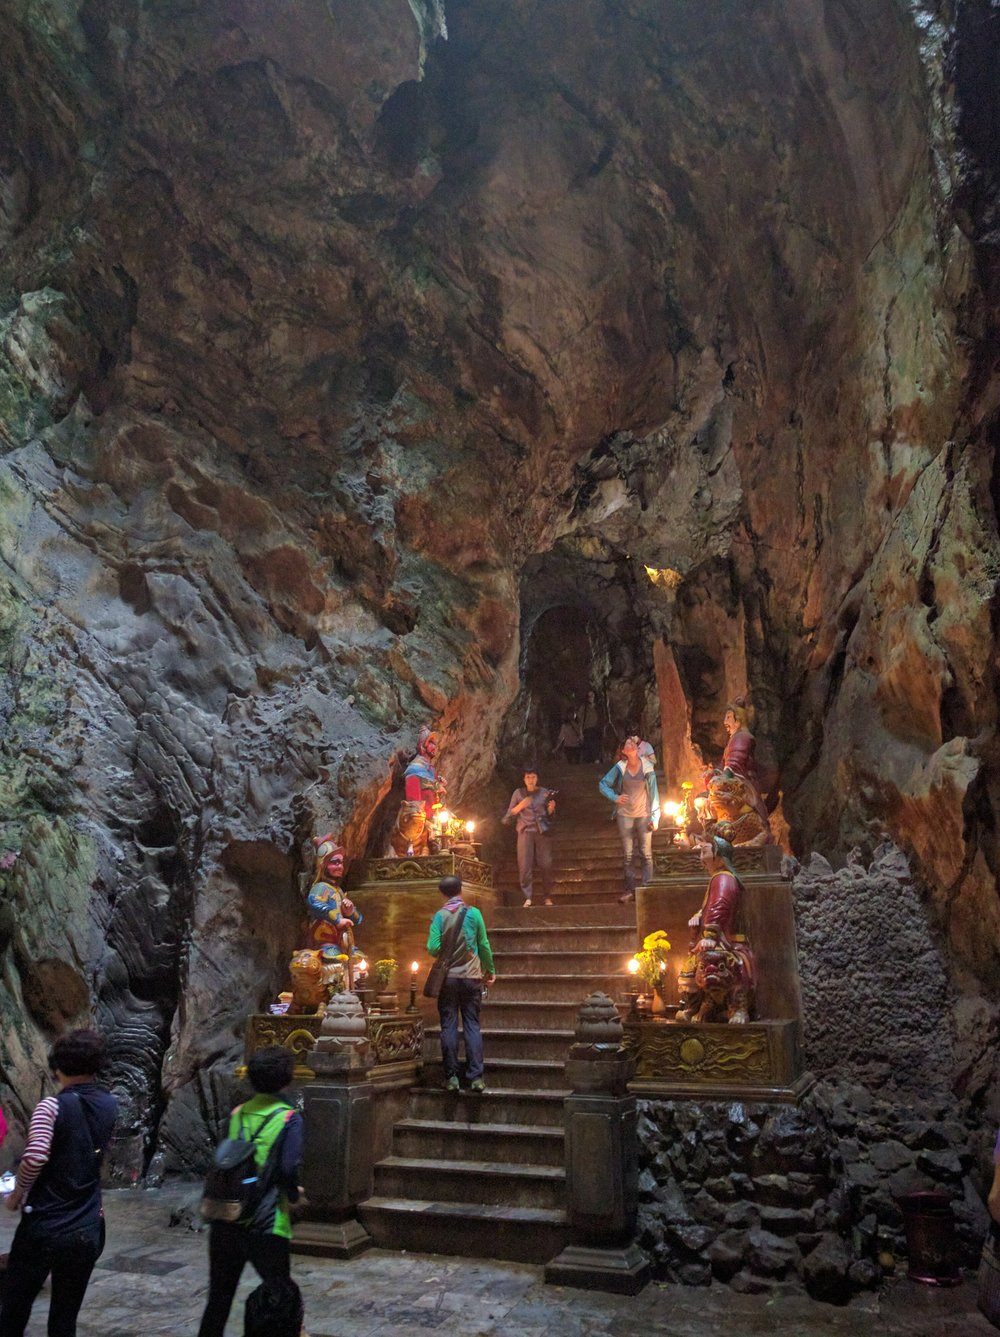 Marble Mountain has a number of beautiful and unique cave temples like this one.